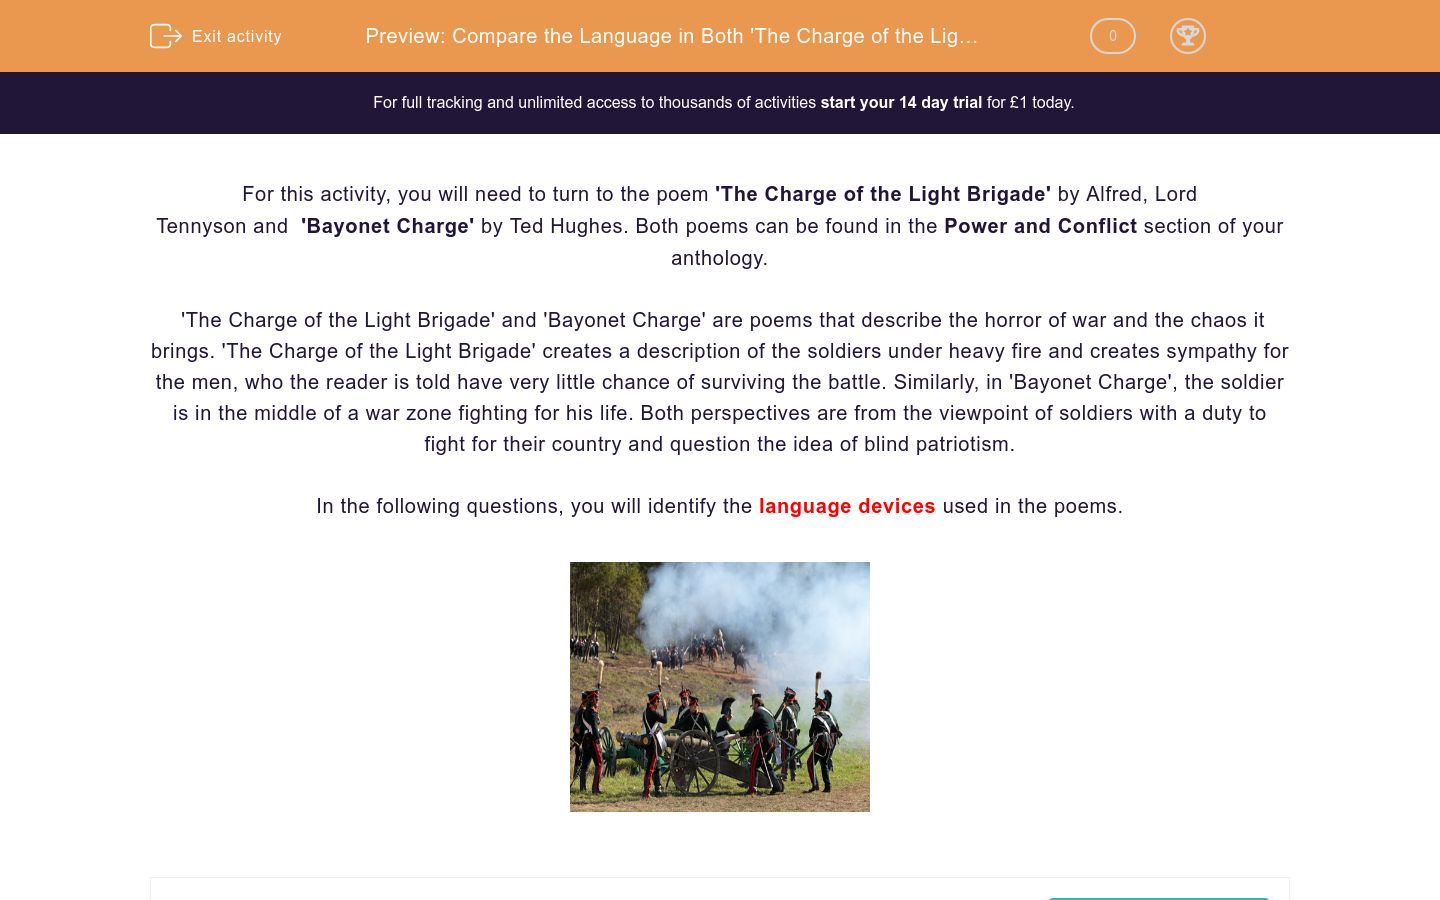 'Compare the Language in Both 'The Charge of the Light Brigade' by Alfred Lord Tennyson and 'Bayonet Charge' by Ted Hughes' worksheet